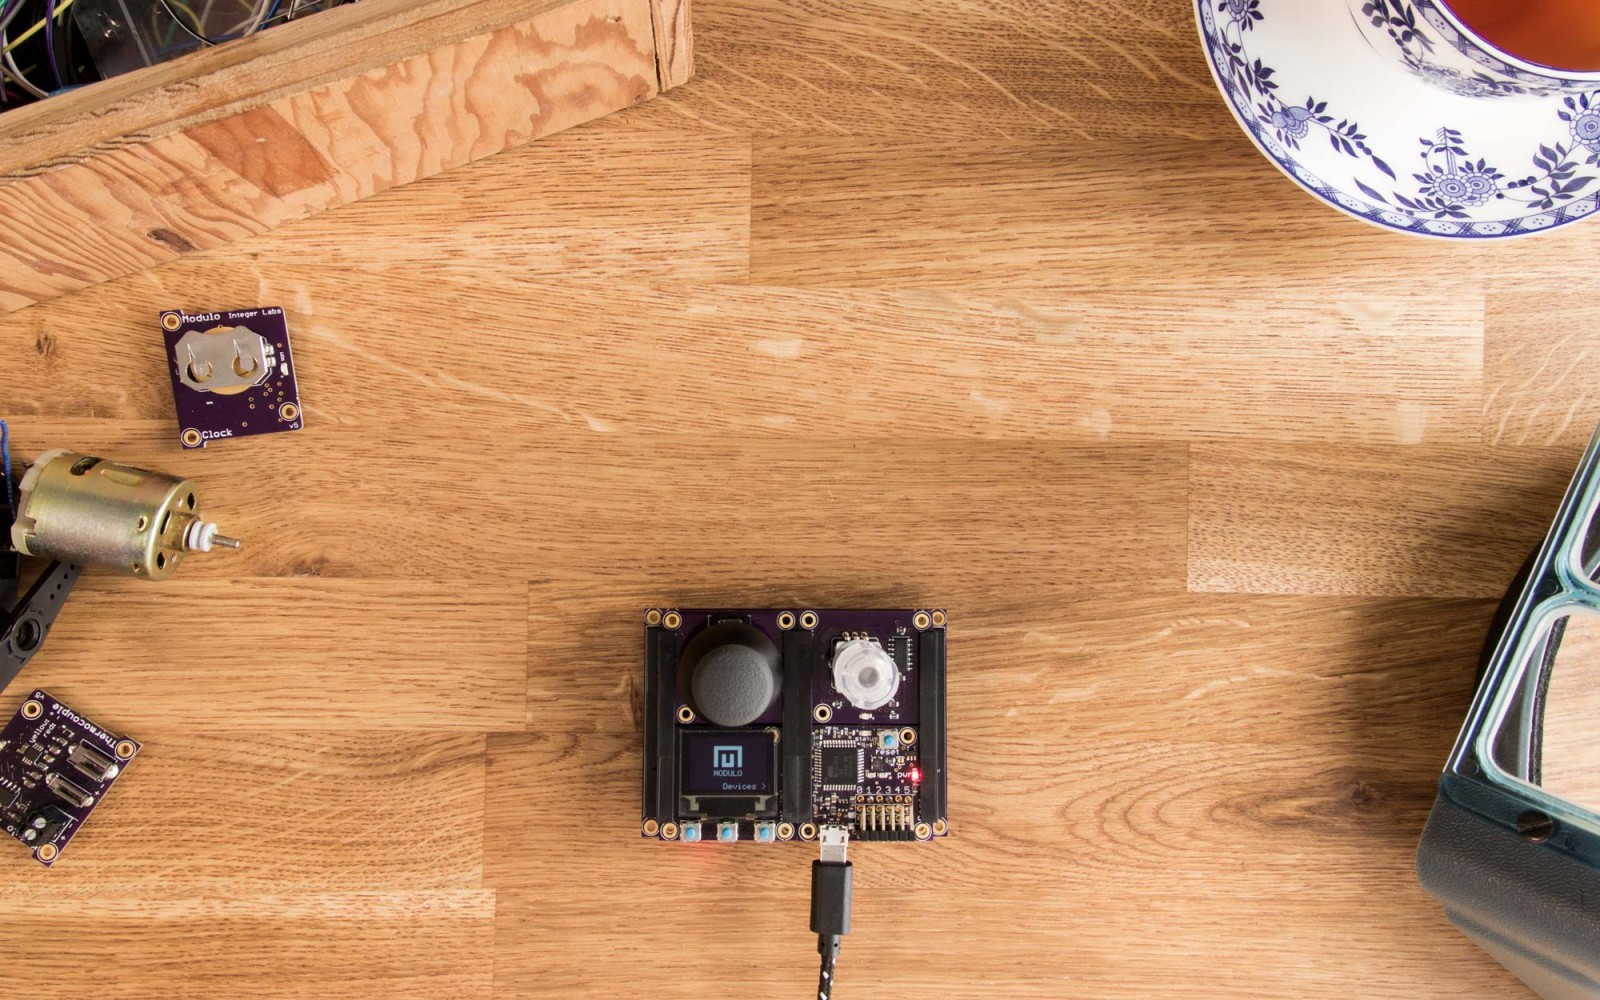 Modulo: A simple, modular solution for building electronics